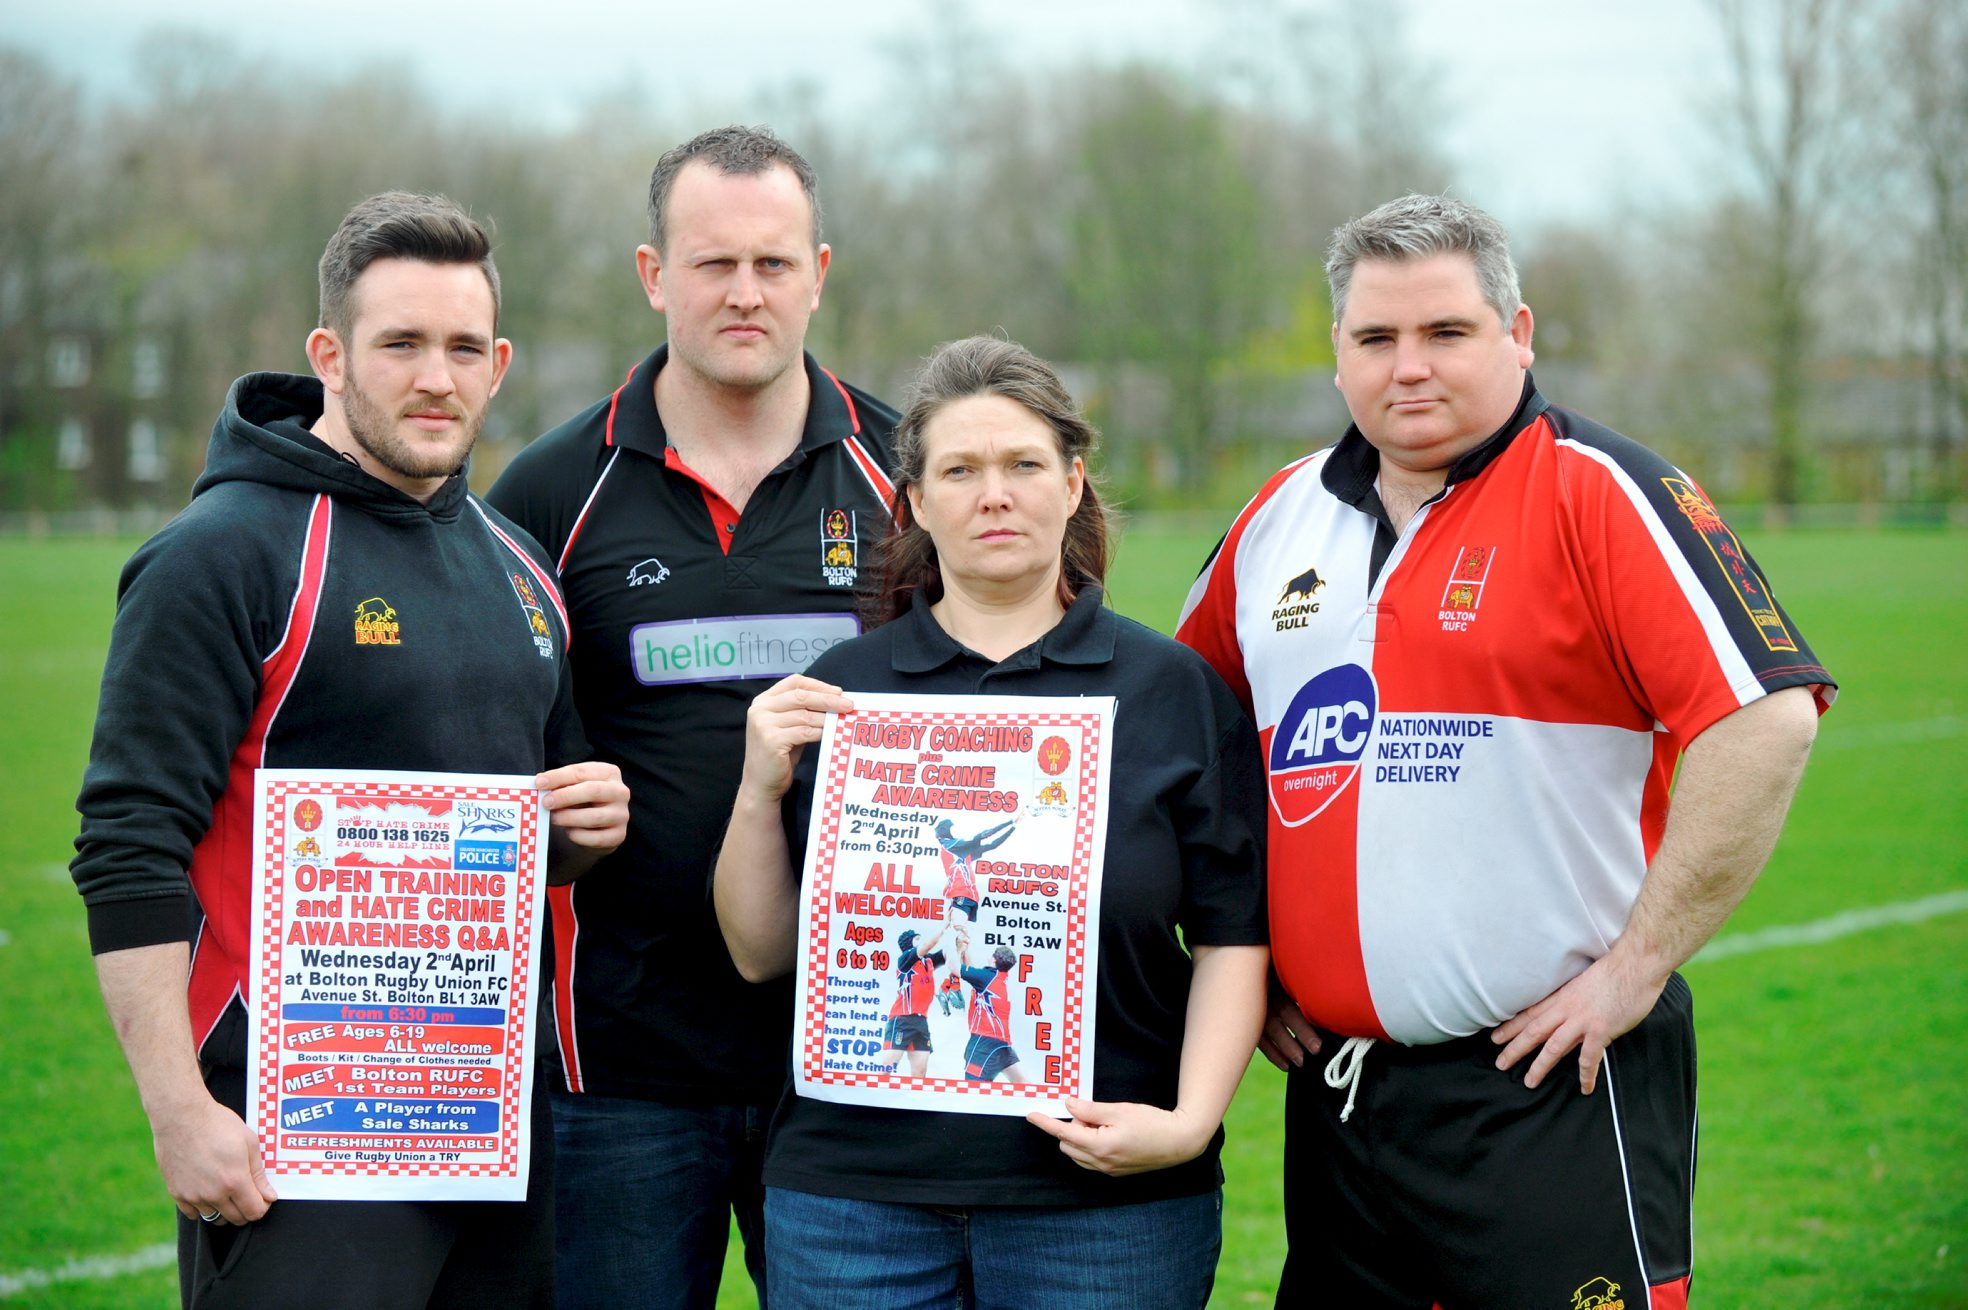 From left, rugby team players Chris Cockton and Tony McLaughlin with Eraina Smith, safeguarding officer, and Jon-Paul Hardman, senior chairman, at Bolton Rugby Union Club's campaign against Hate Crime